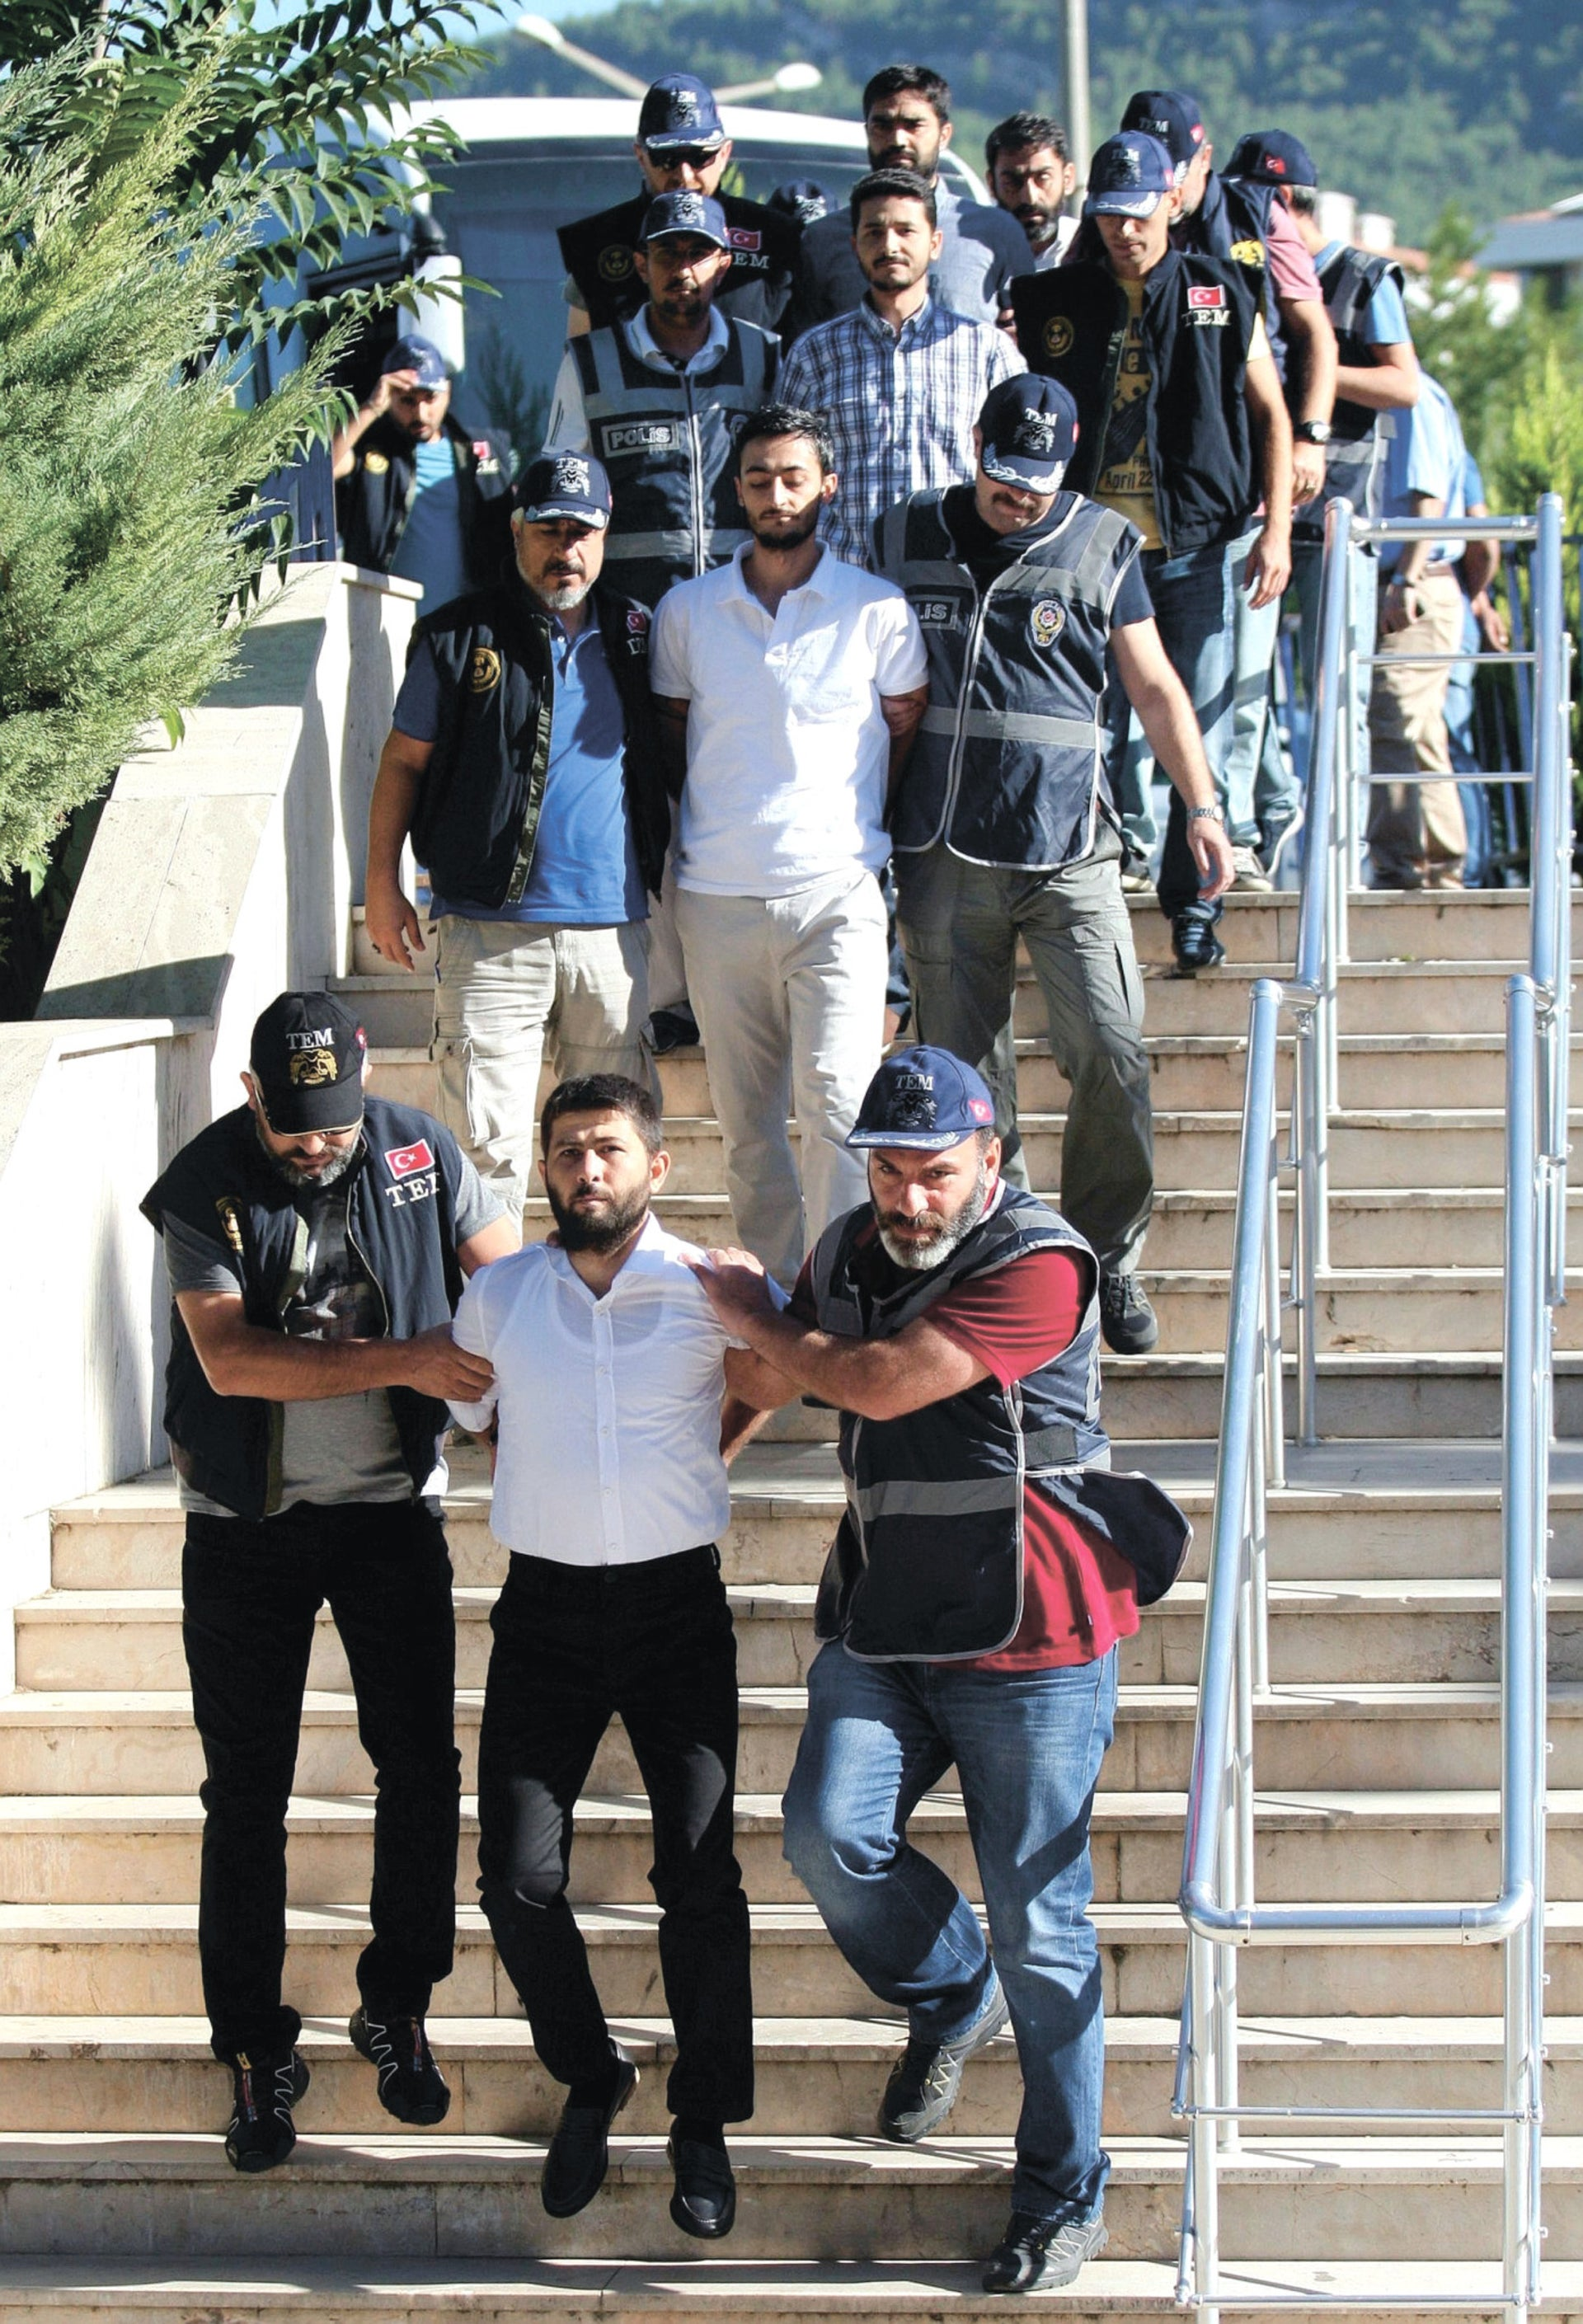 Military personnel suspected of being involved in the coup attempt, are brought to a court house as they are accompanied by police officers in Mugla, Turkey, August 17, 2016.